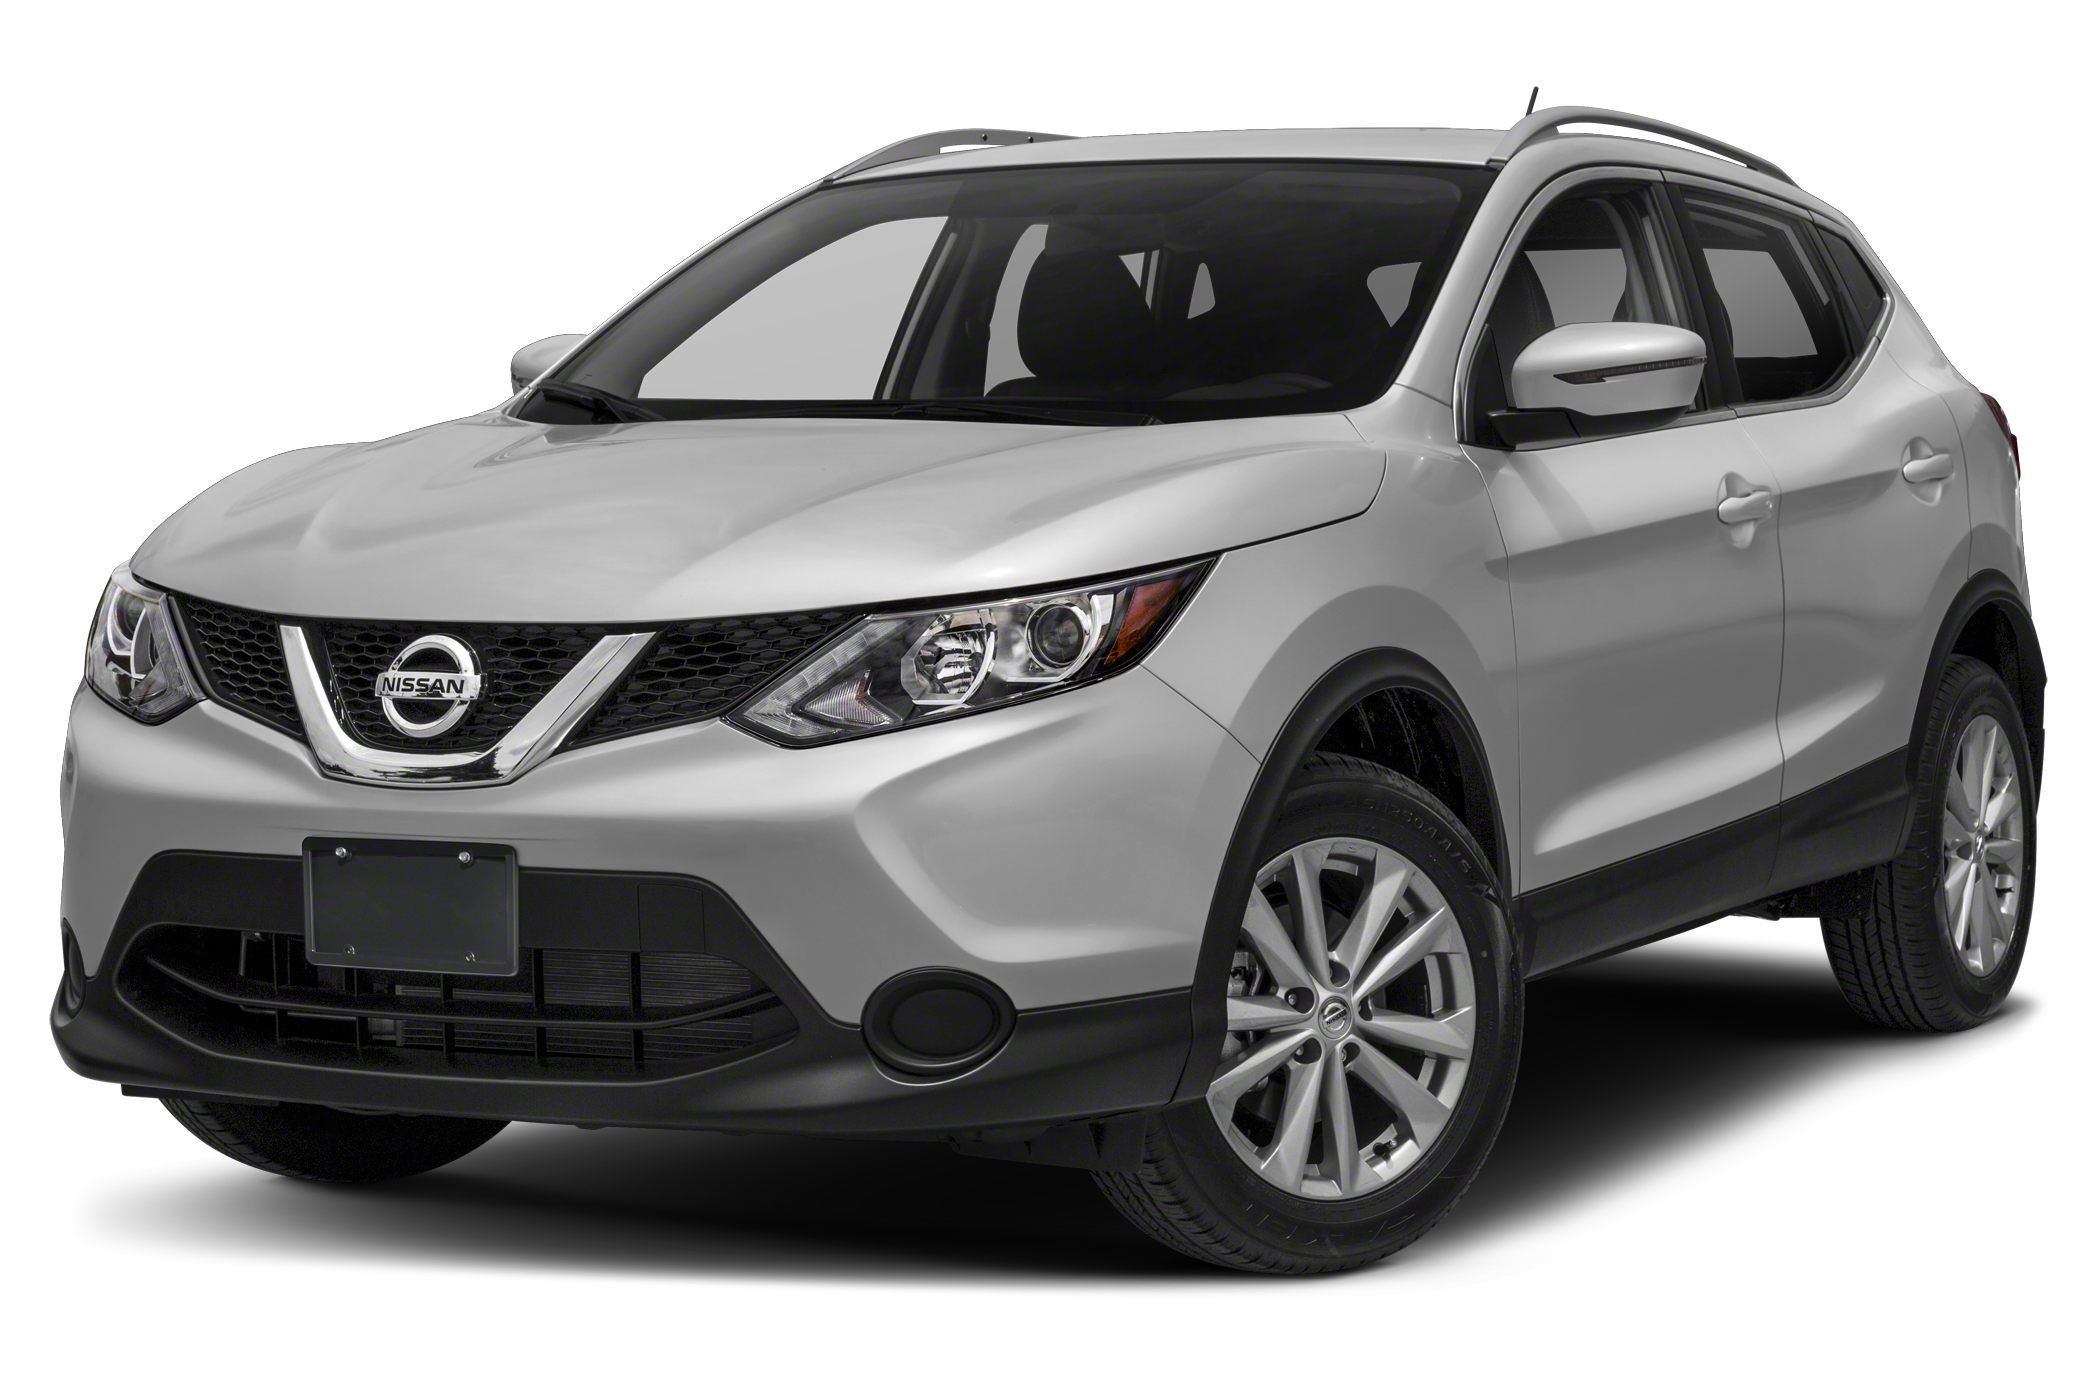 2019 Nissan Rogue Sport Gets 620 Price Increase Nissan Is Adding 620 To The Base Price Of Its Rogue Sport Compact Crossover Suv Cars Nissan Rogue Nissan Cars